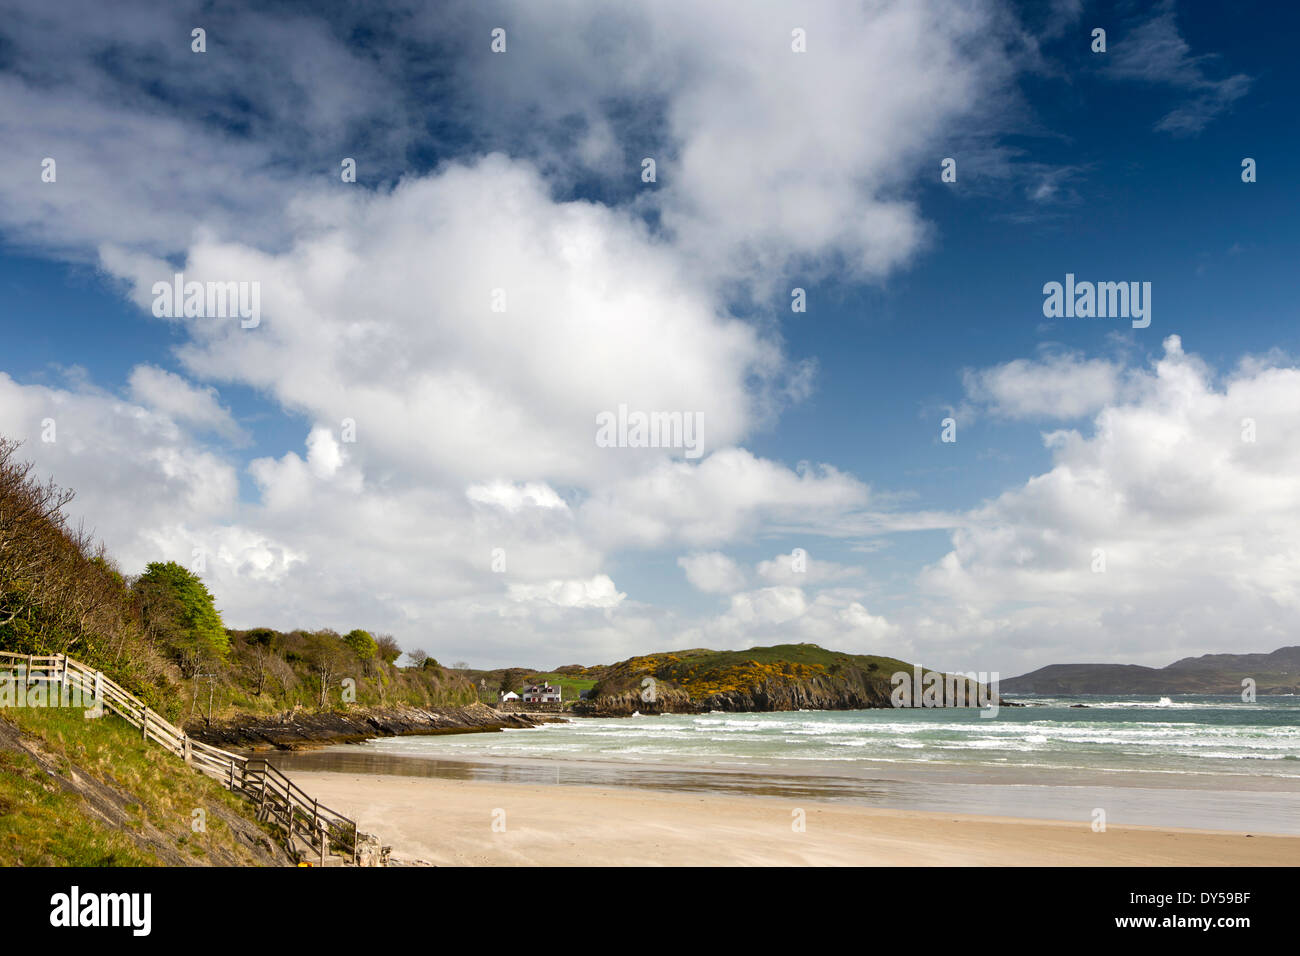 Ireland, Co Donegal, Dunfanaghy, Marble Hill Beach - Stock Image